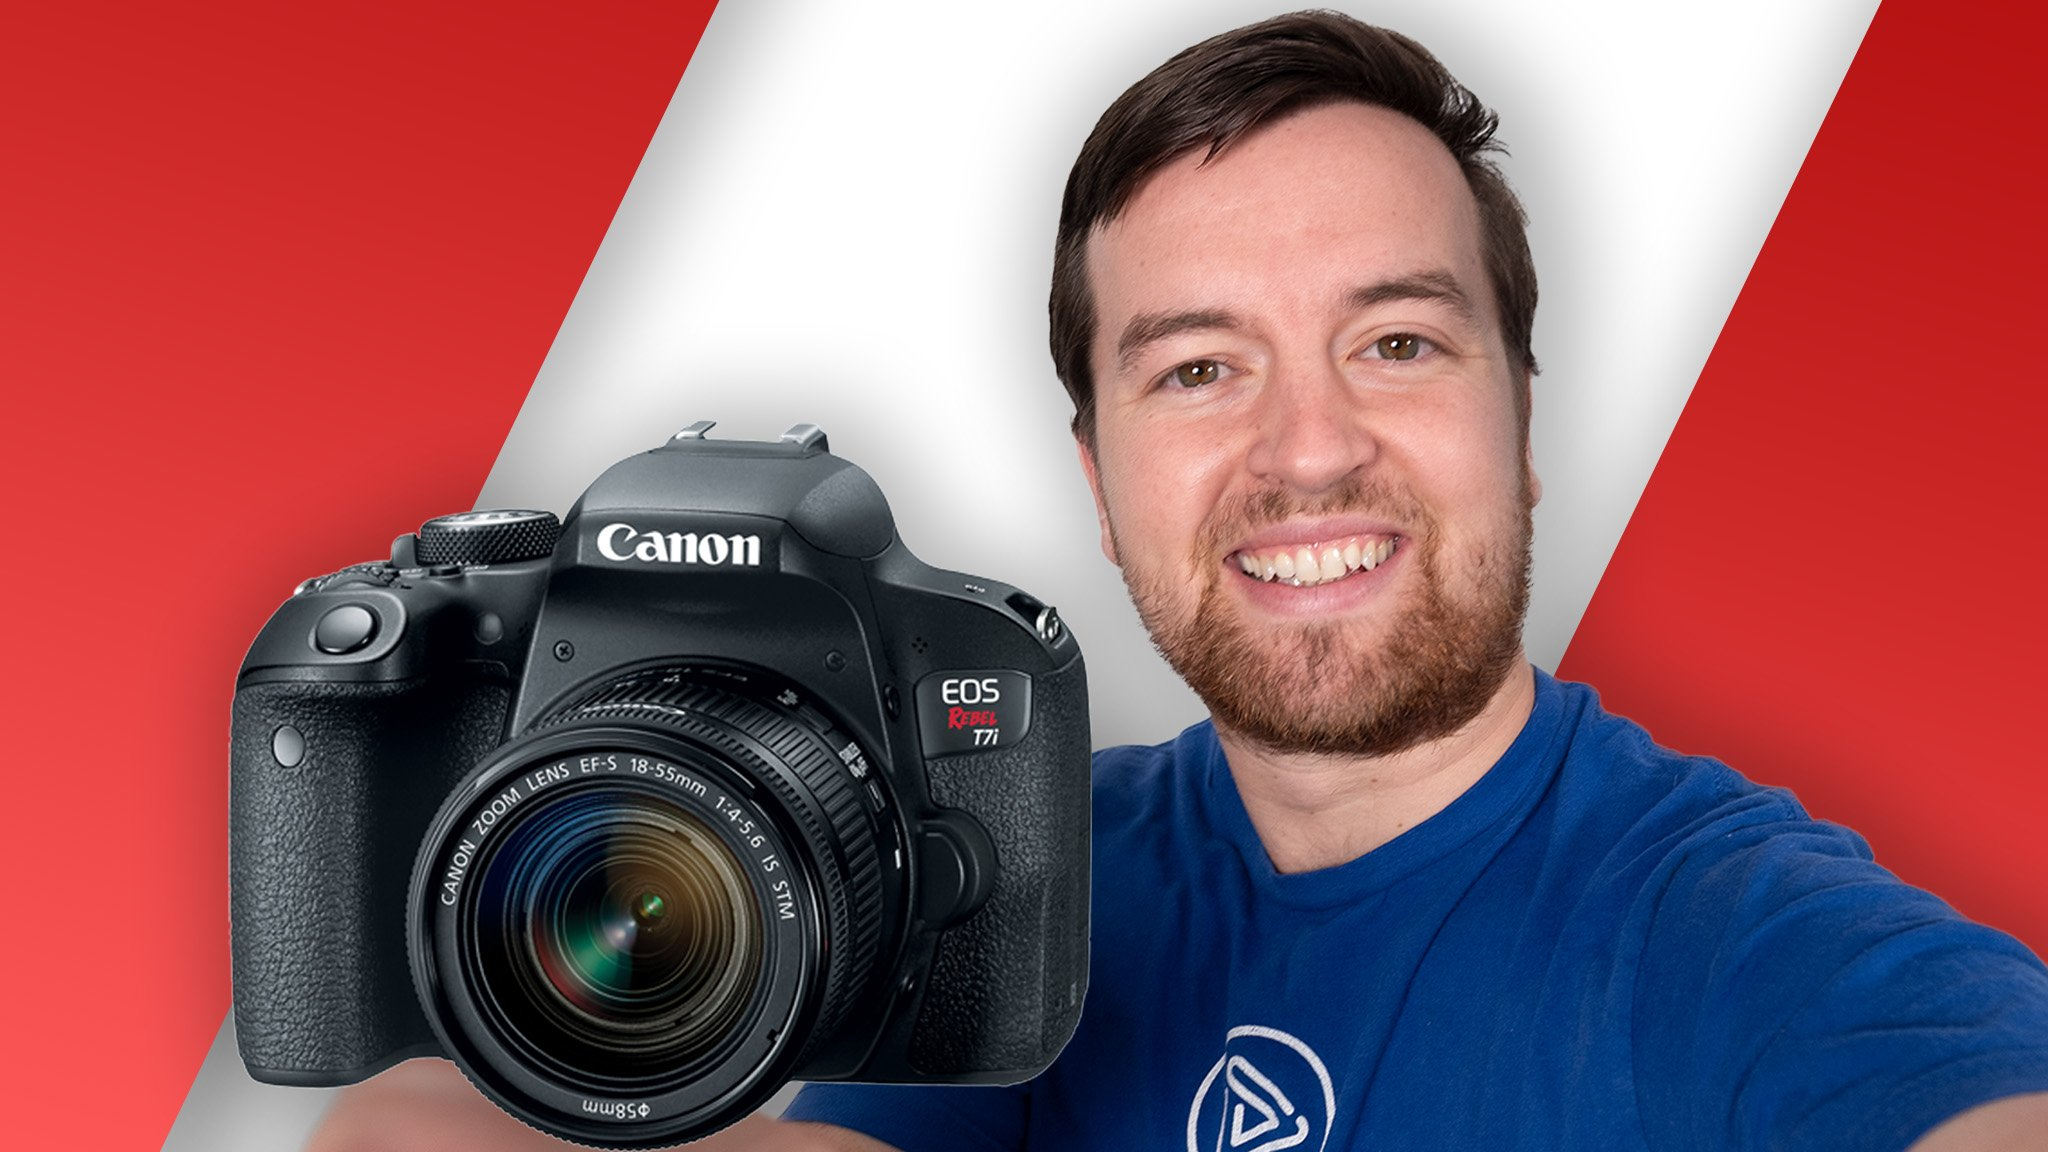 Canon DSLR Photography: Getting Started with Your DSLR